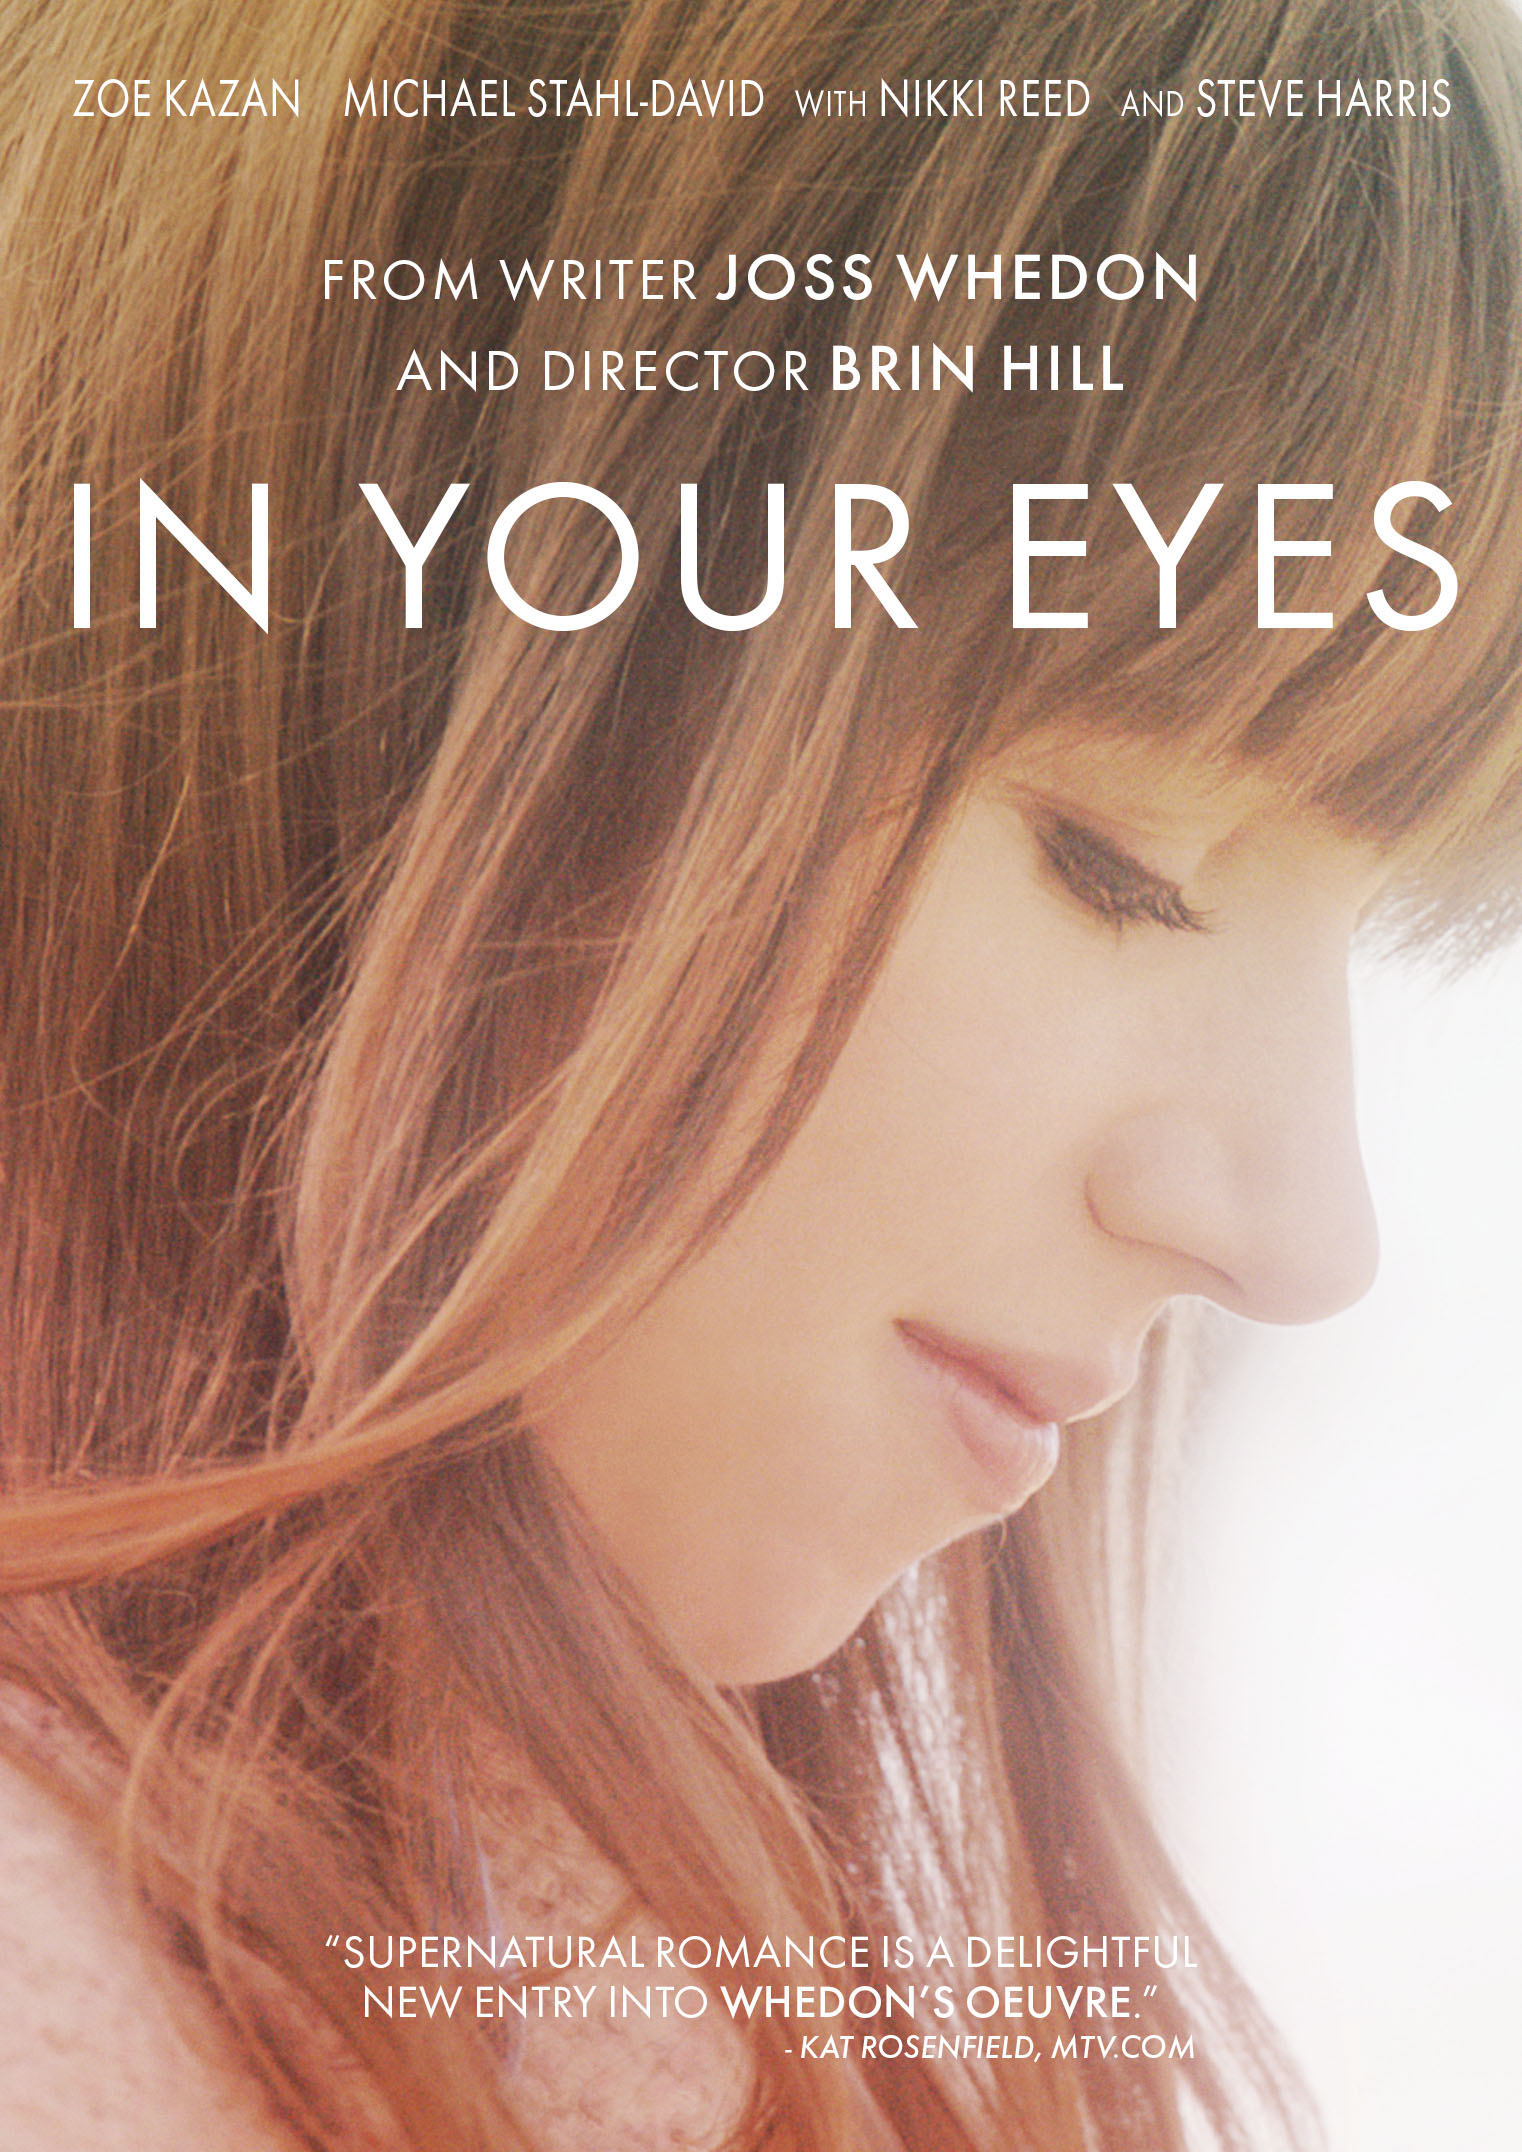 in your eyes1 - Joss Whedon Shoots Supernatural Romance In Your Eyes